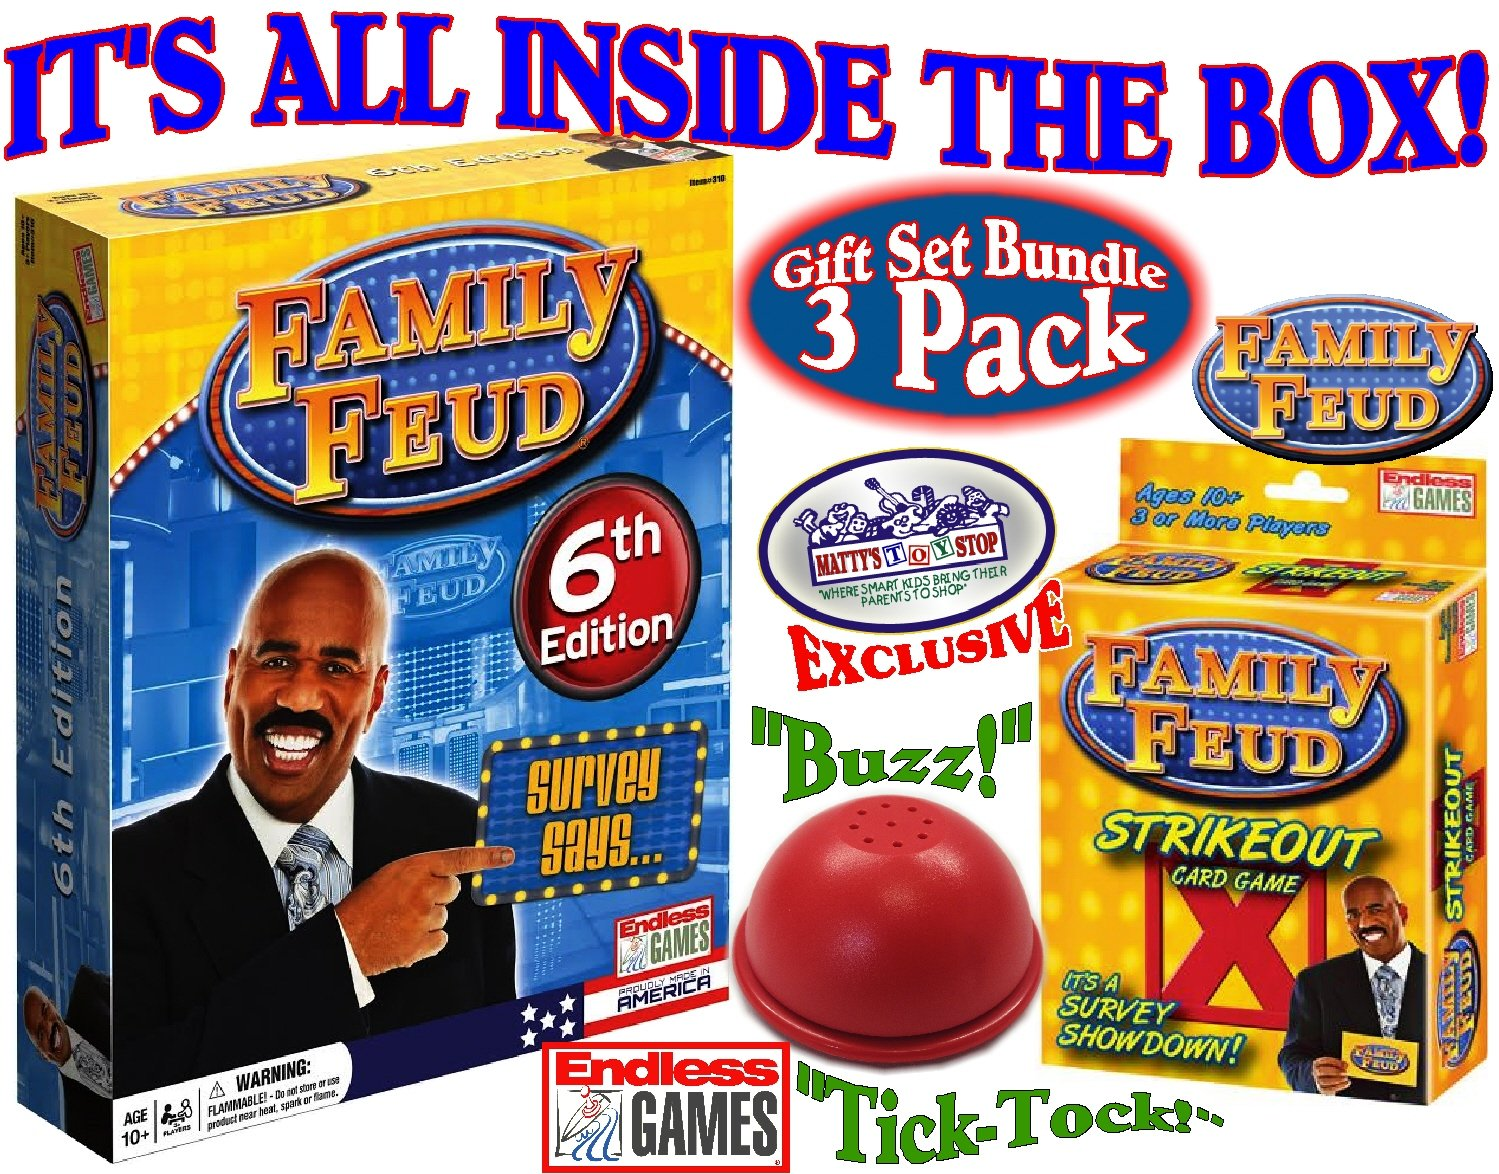 Details about Endless Games Family Feud 6th Edition Set Bundle Includes  Strikeout Card Game,